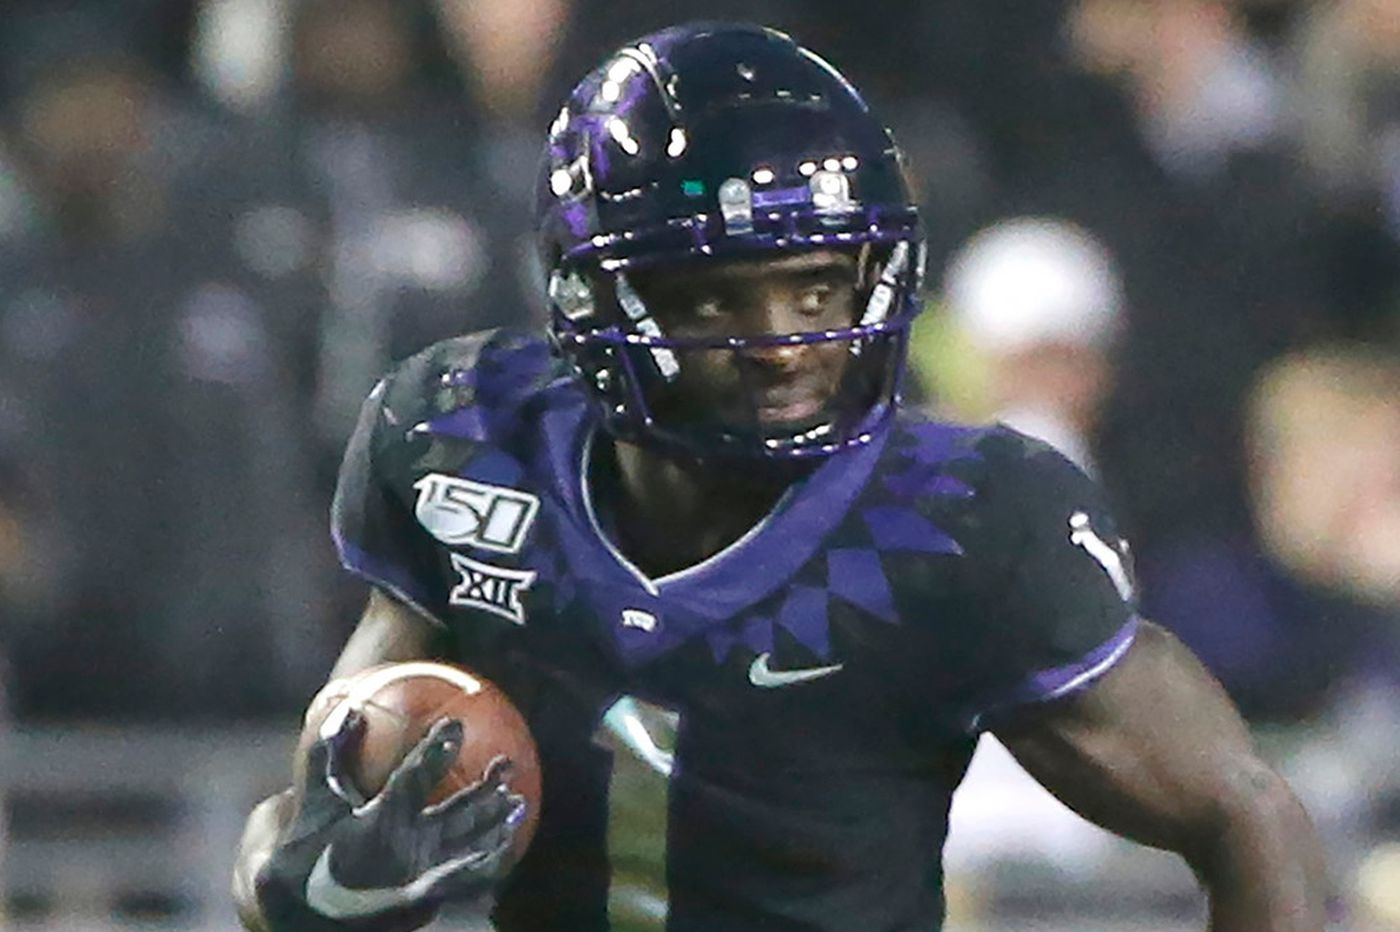 Rating the NFL draft: Eagles beat team weighs in on first-round wide receiver Jalen Reagor